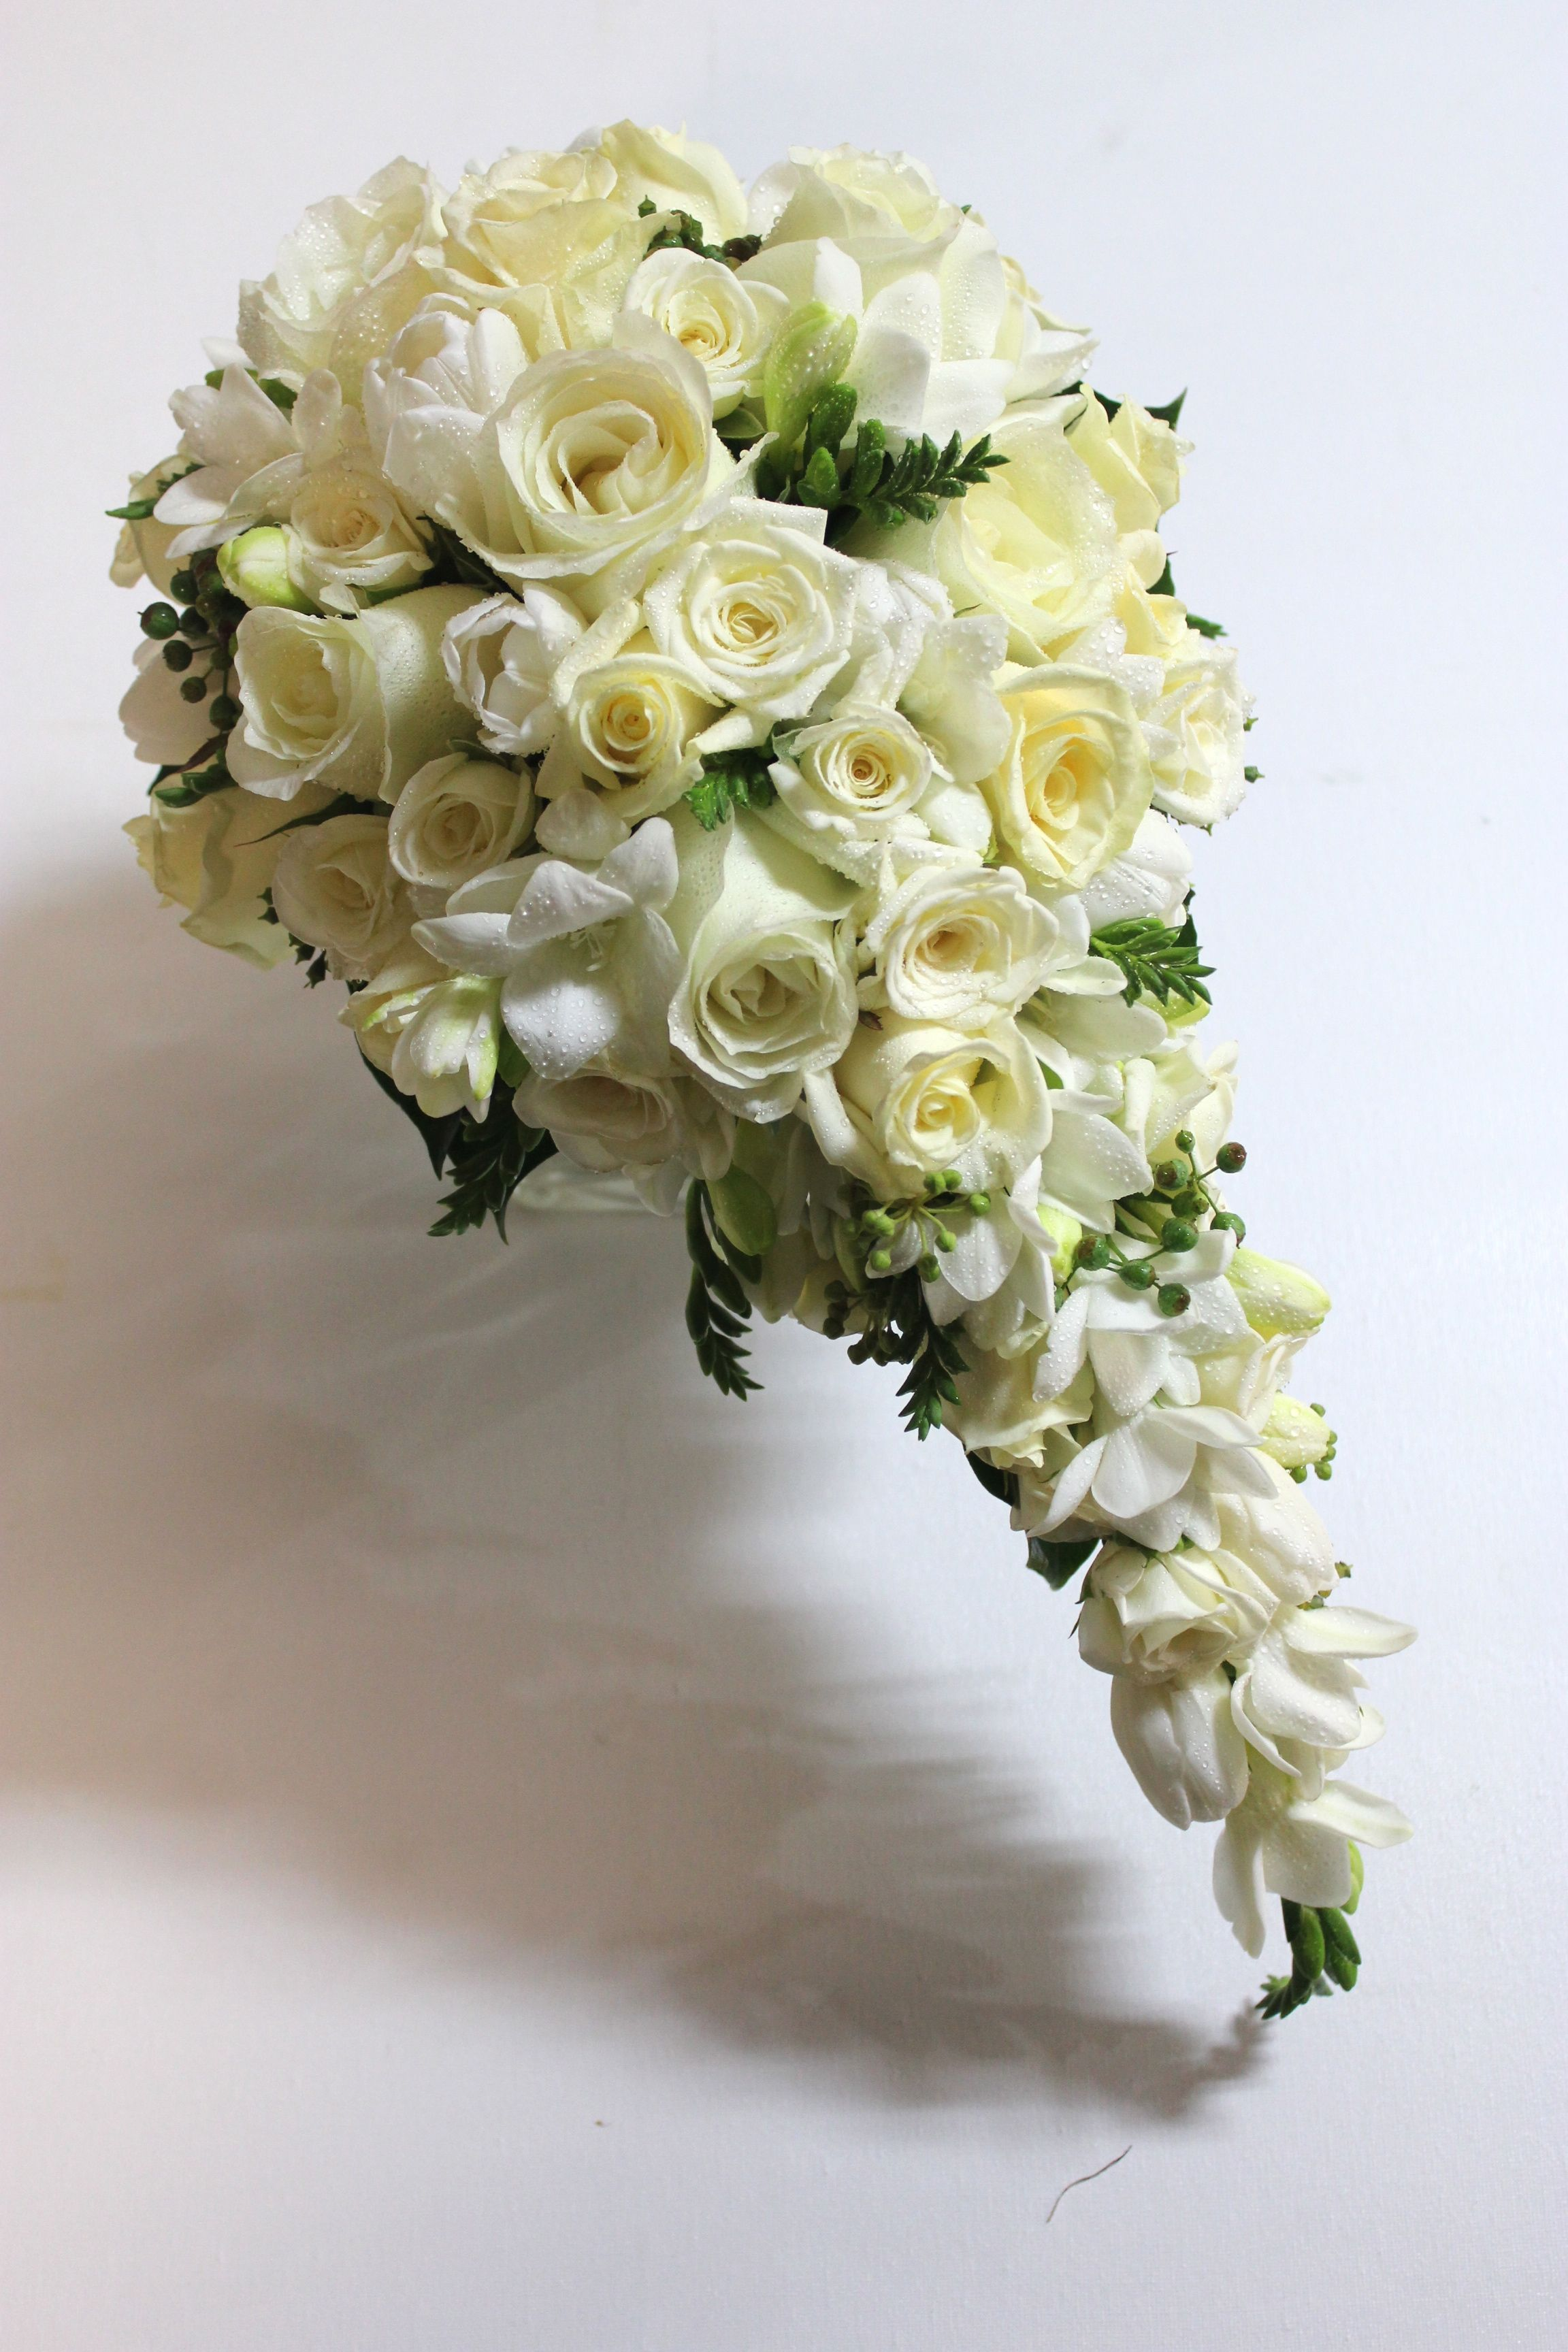 L love cascade bouquets and this one was a stunner wedding flowers l love cascade bouquets and this one was a stunner izmirmasajfo Choice Image